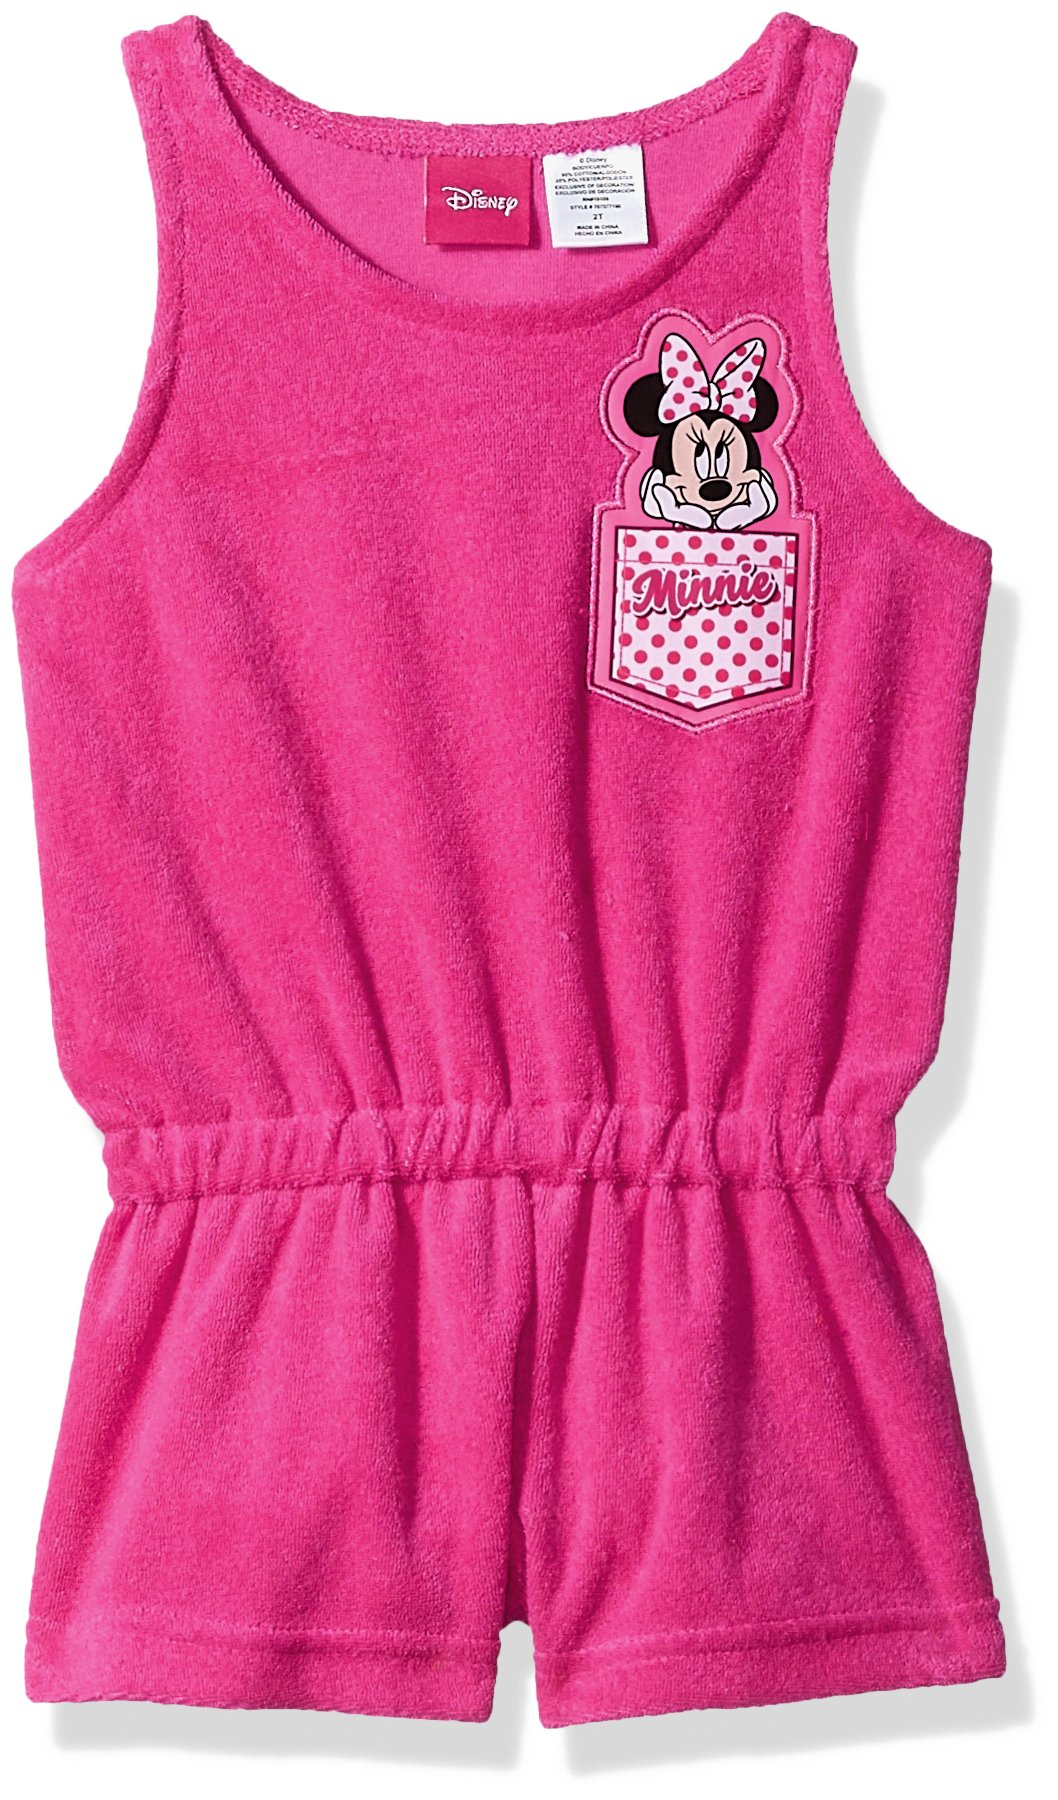 Dreamwave Toddler Girls' Minnie Mouse Terry Romper, Hot Pink, 2T